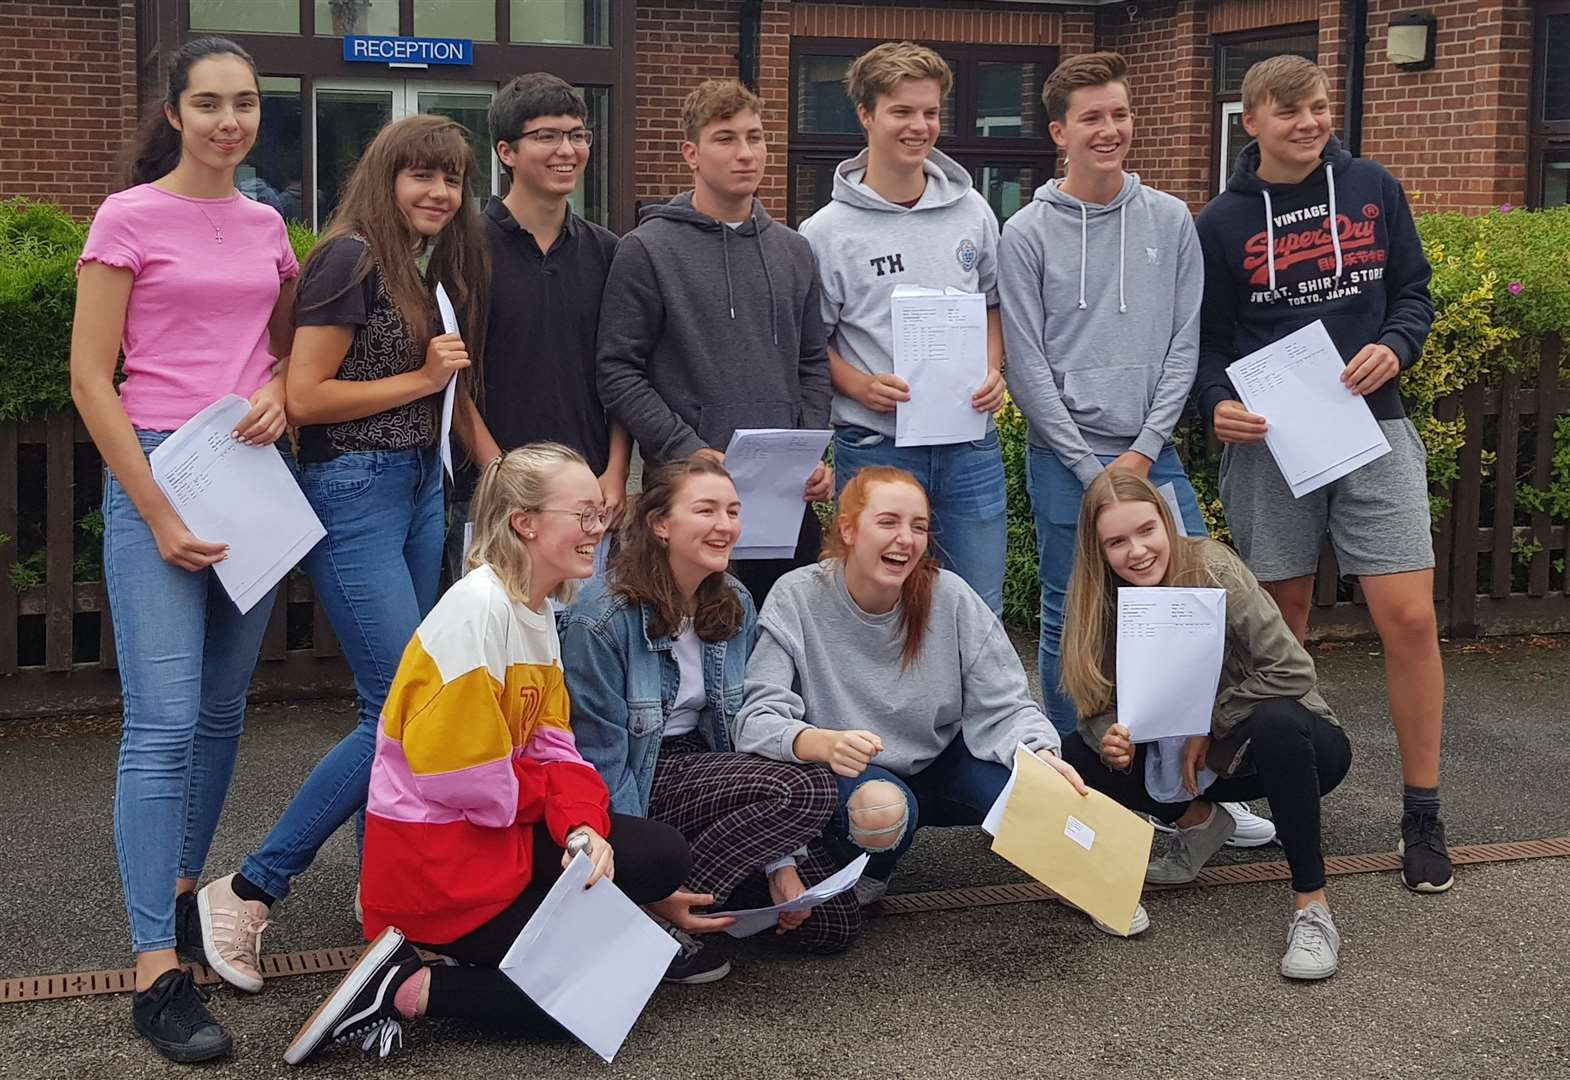 Maddie the A-Level star as St Mary's head hails 'magnificent' set of results